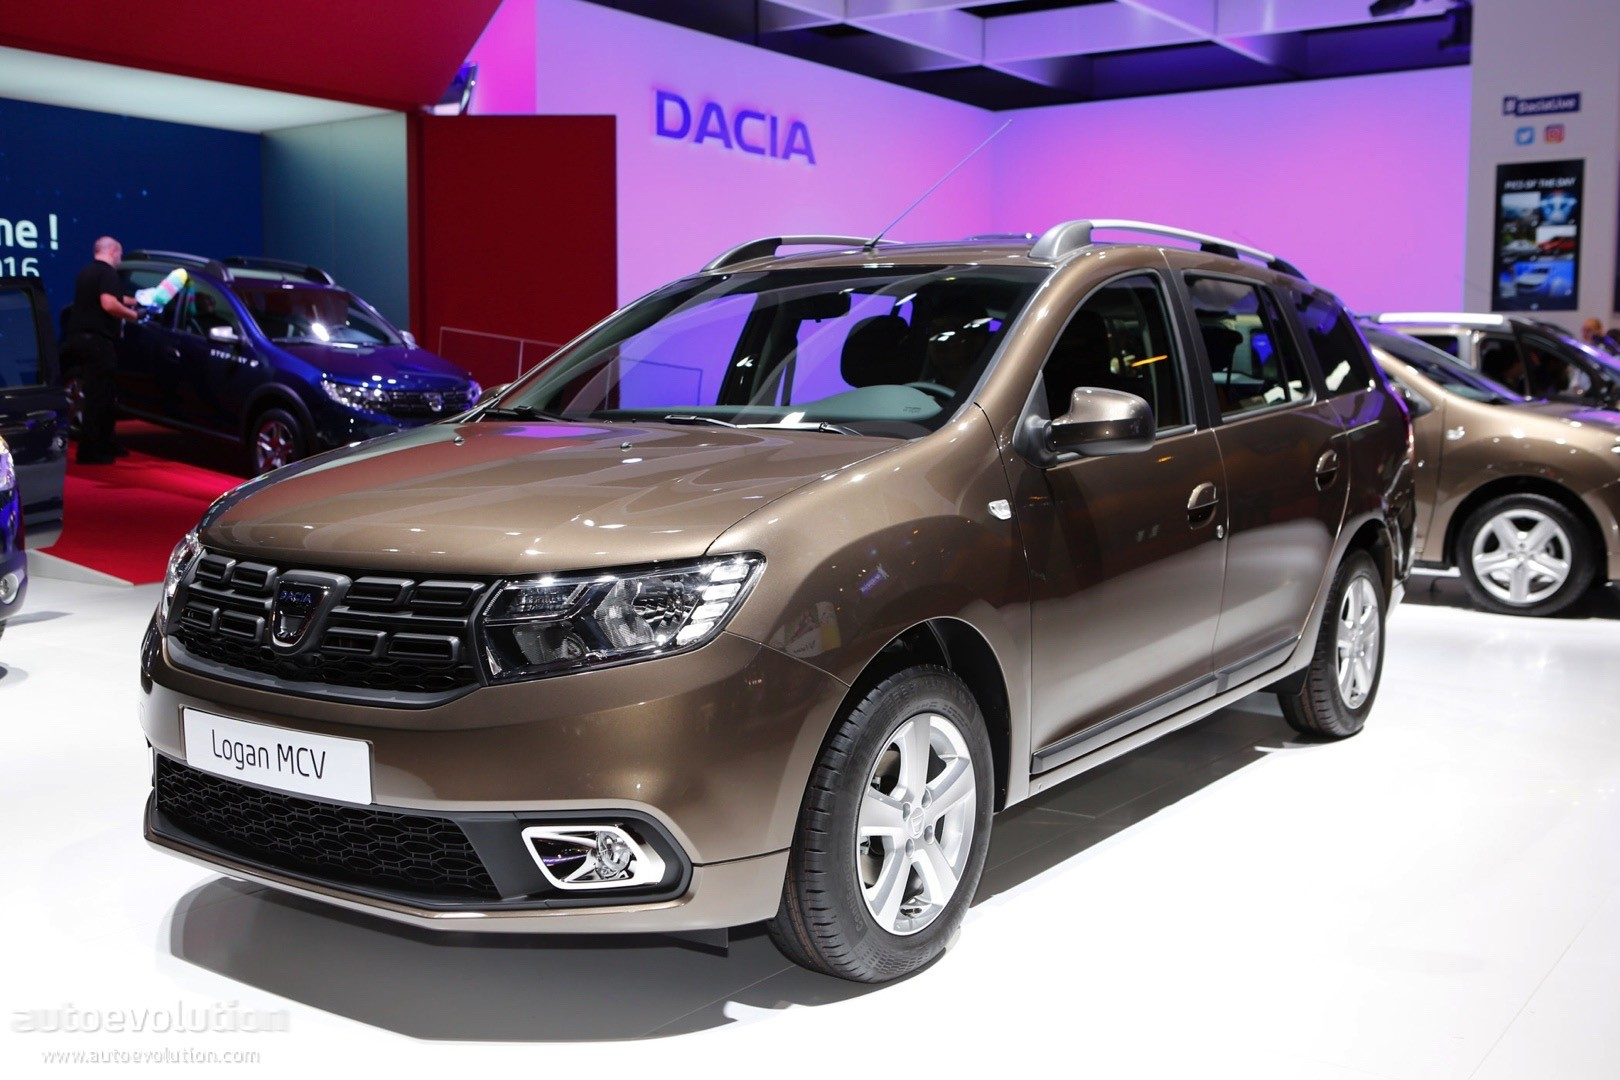 dacia sandero stepway 15 200 km in world record time autoevolution. Black Bedroom Furniture Sets. Home Design Ideas